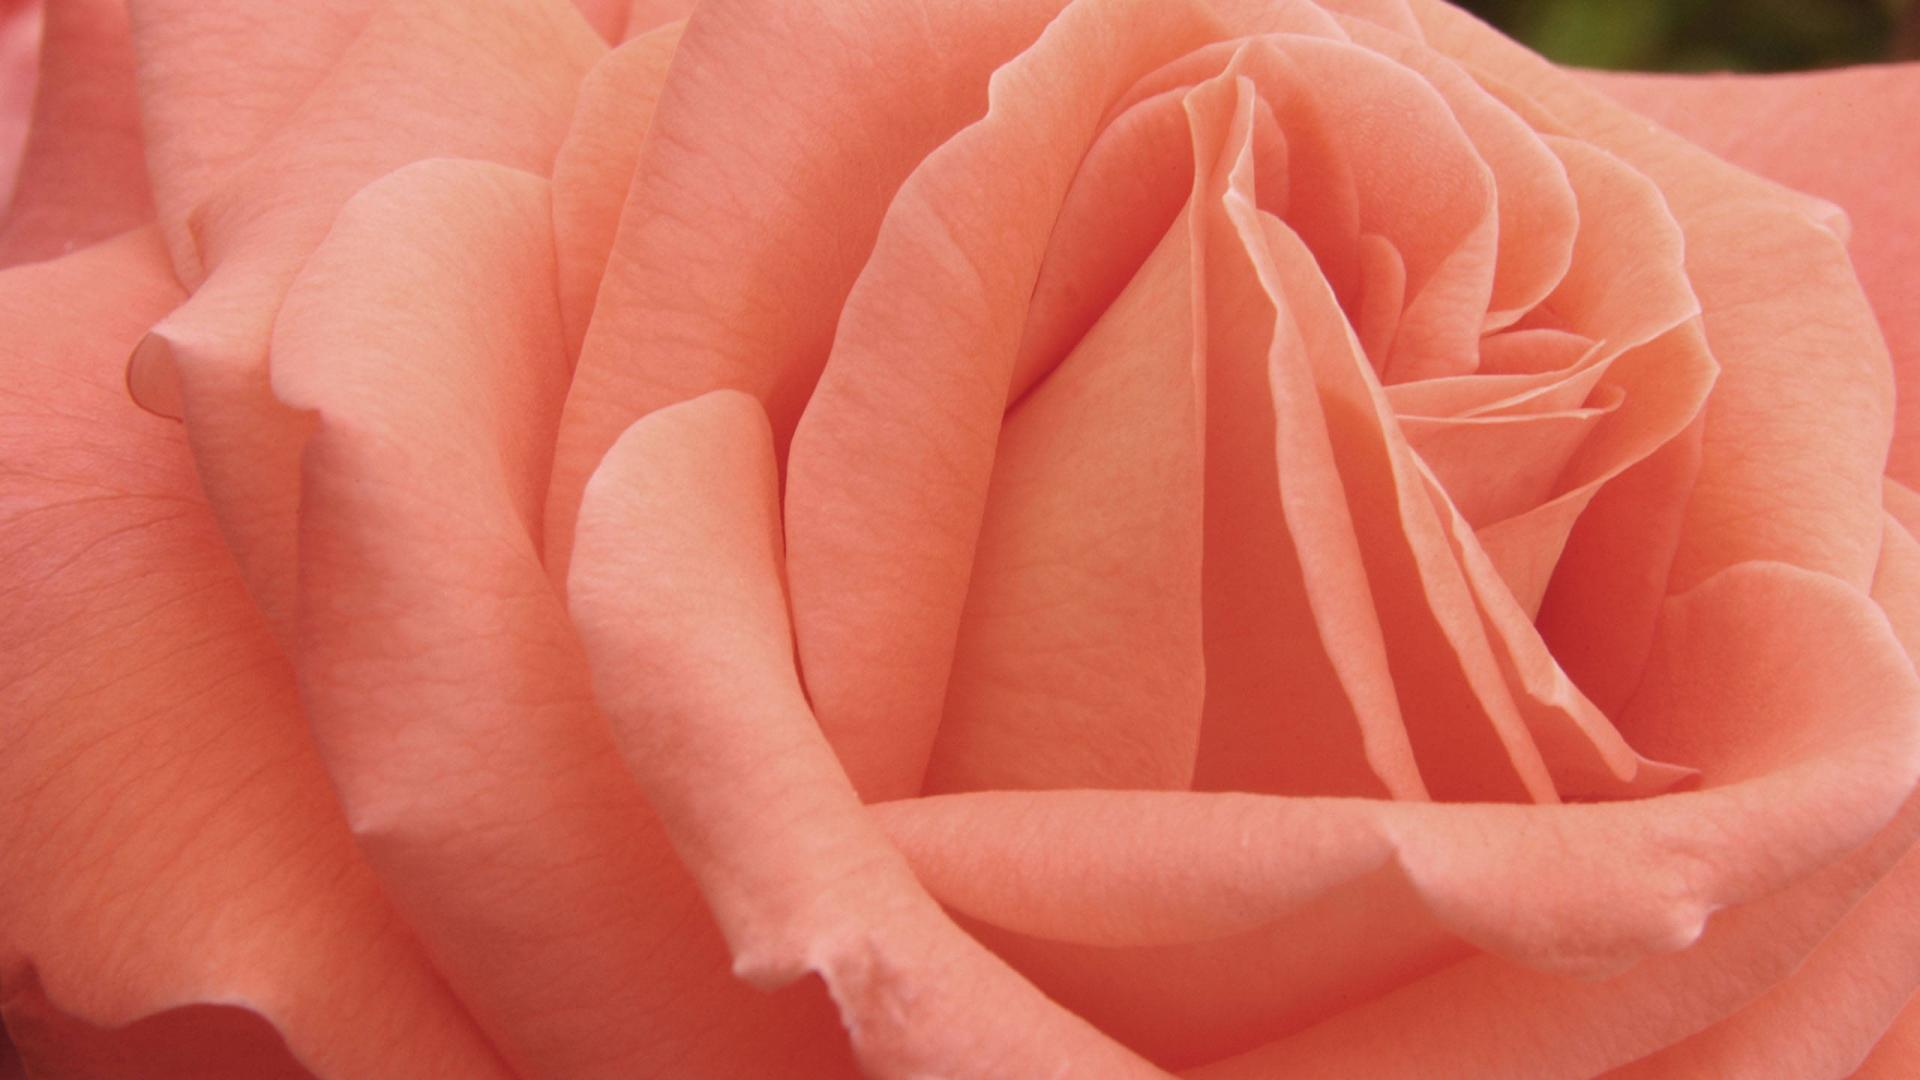 Nature Wallpaper with Peach Colored Rose Flower | HD Wallpapers ...